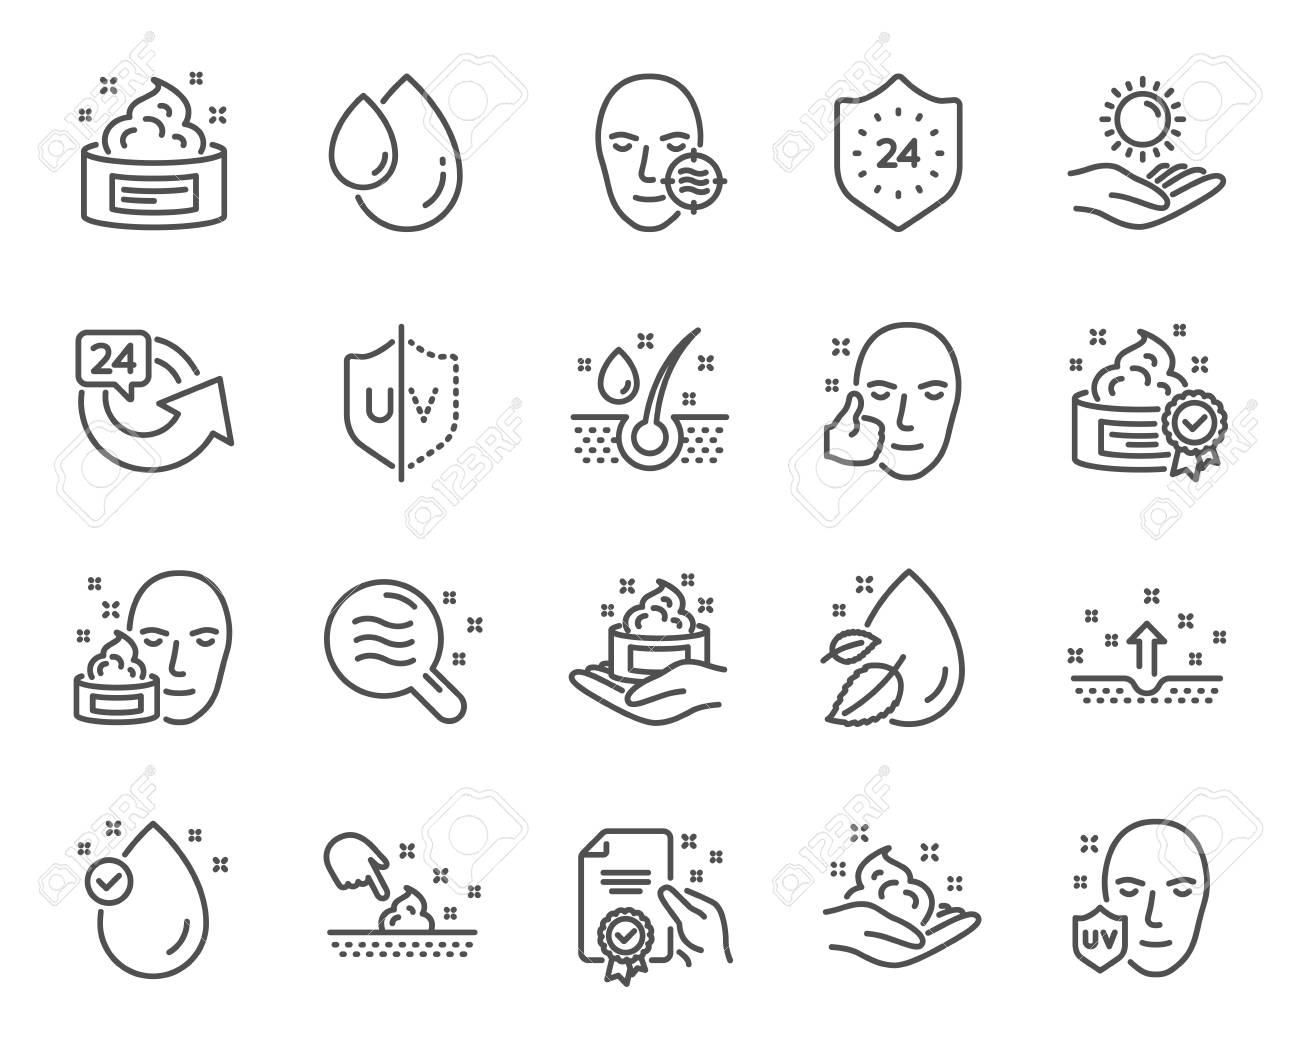 Skin care line icons. Set of Cream, Serum drop and Face gel or lotion linear icons. Oil, Vitamin E and Collagen symbols. 24 hour face care protection. Medical skin cosmetic signs. Vector - 111103266